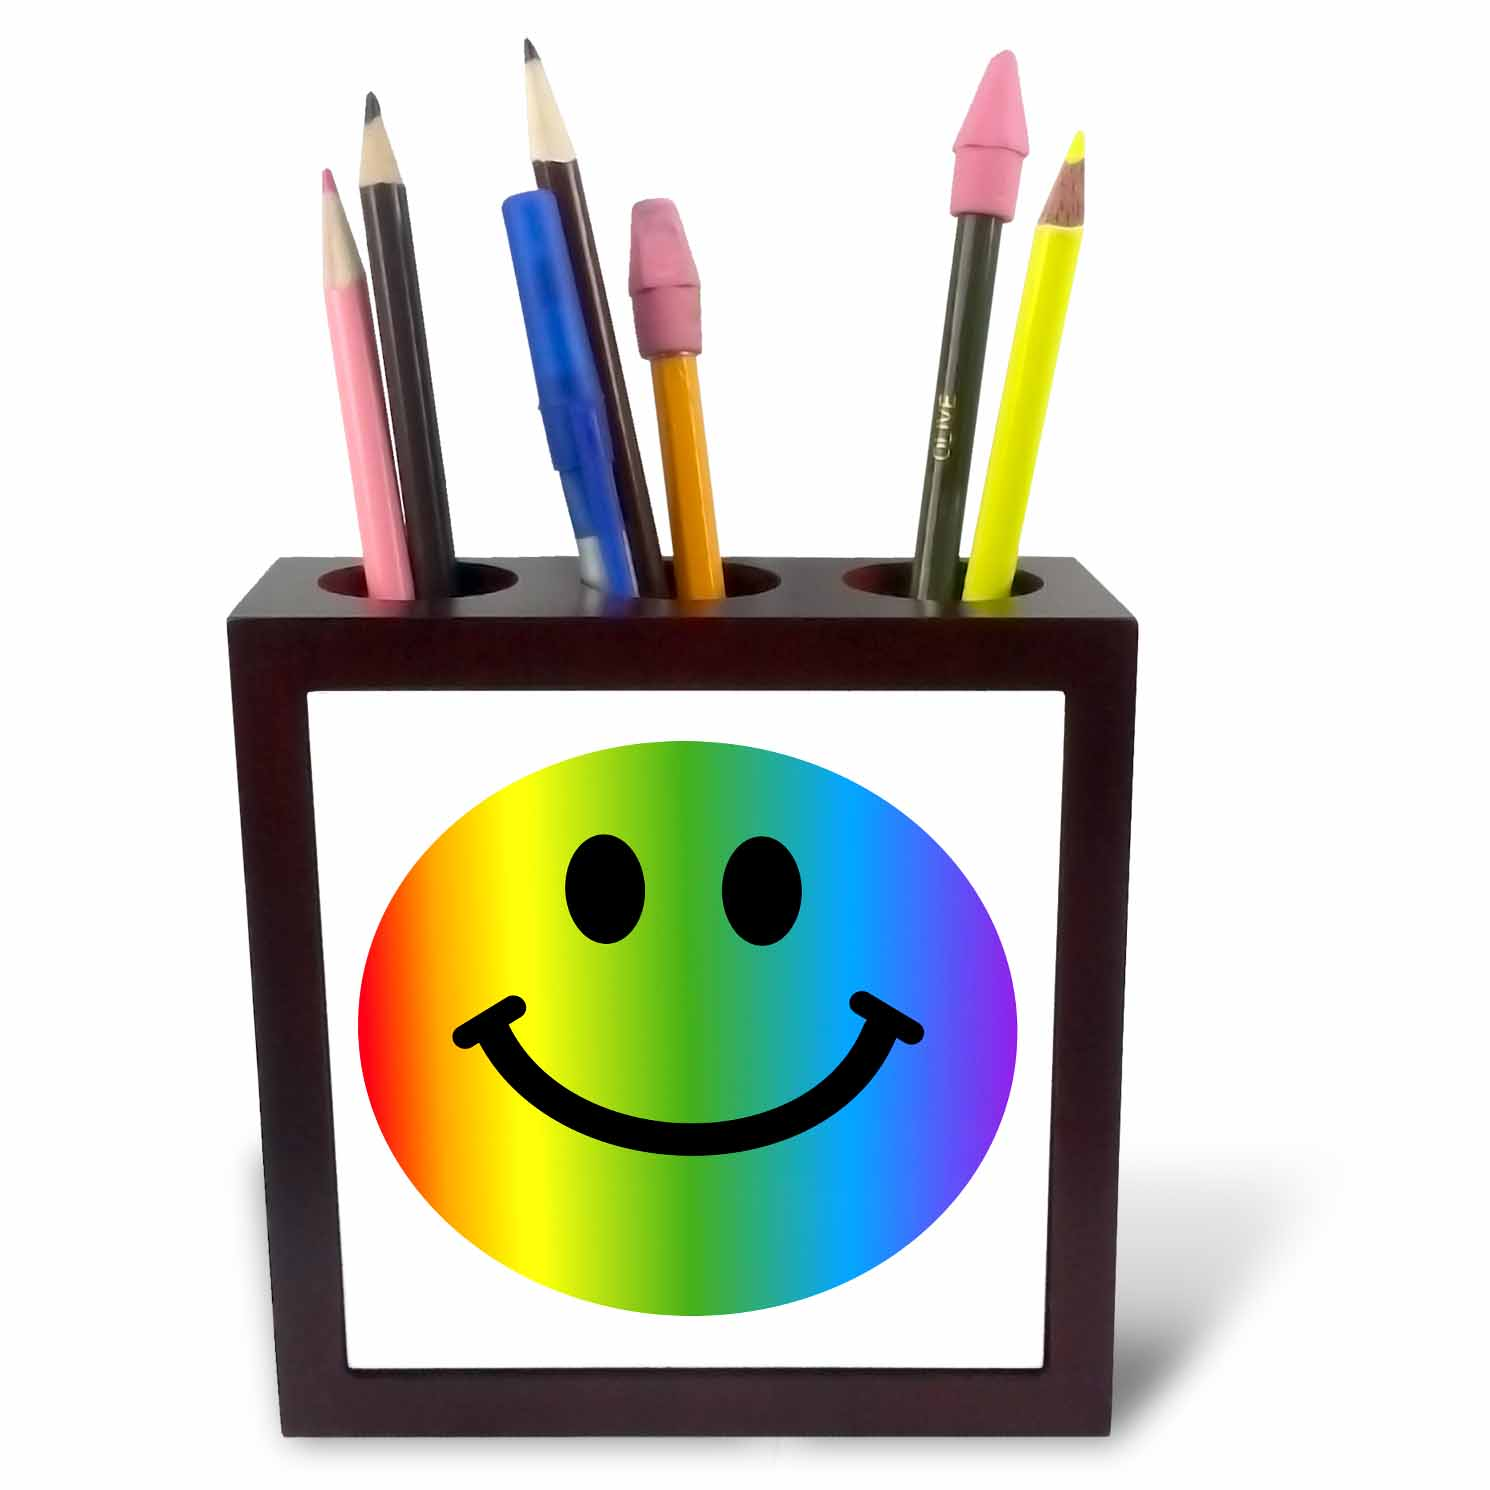 3dRose Rainbow smiley face - colorful gay and happy smilie - multicolor smiling cartoon multicolored smile, Tile Pen Holder, 5-inch